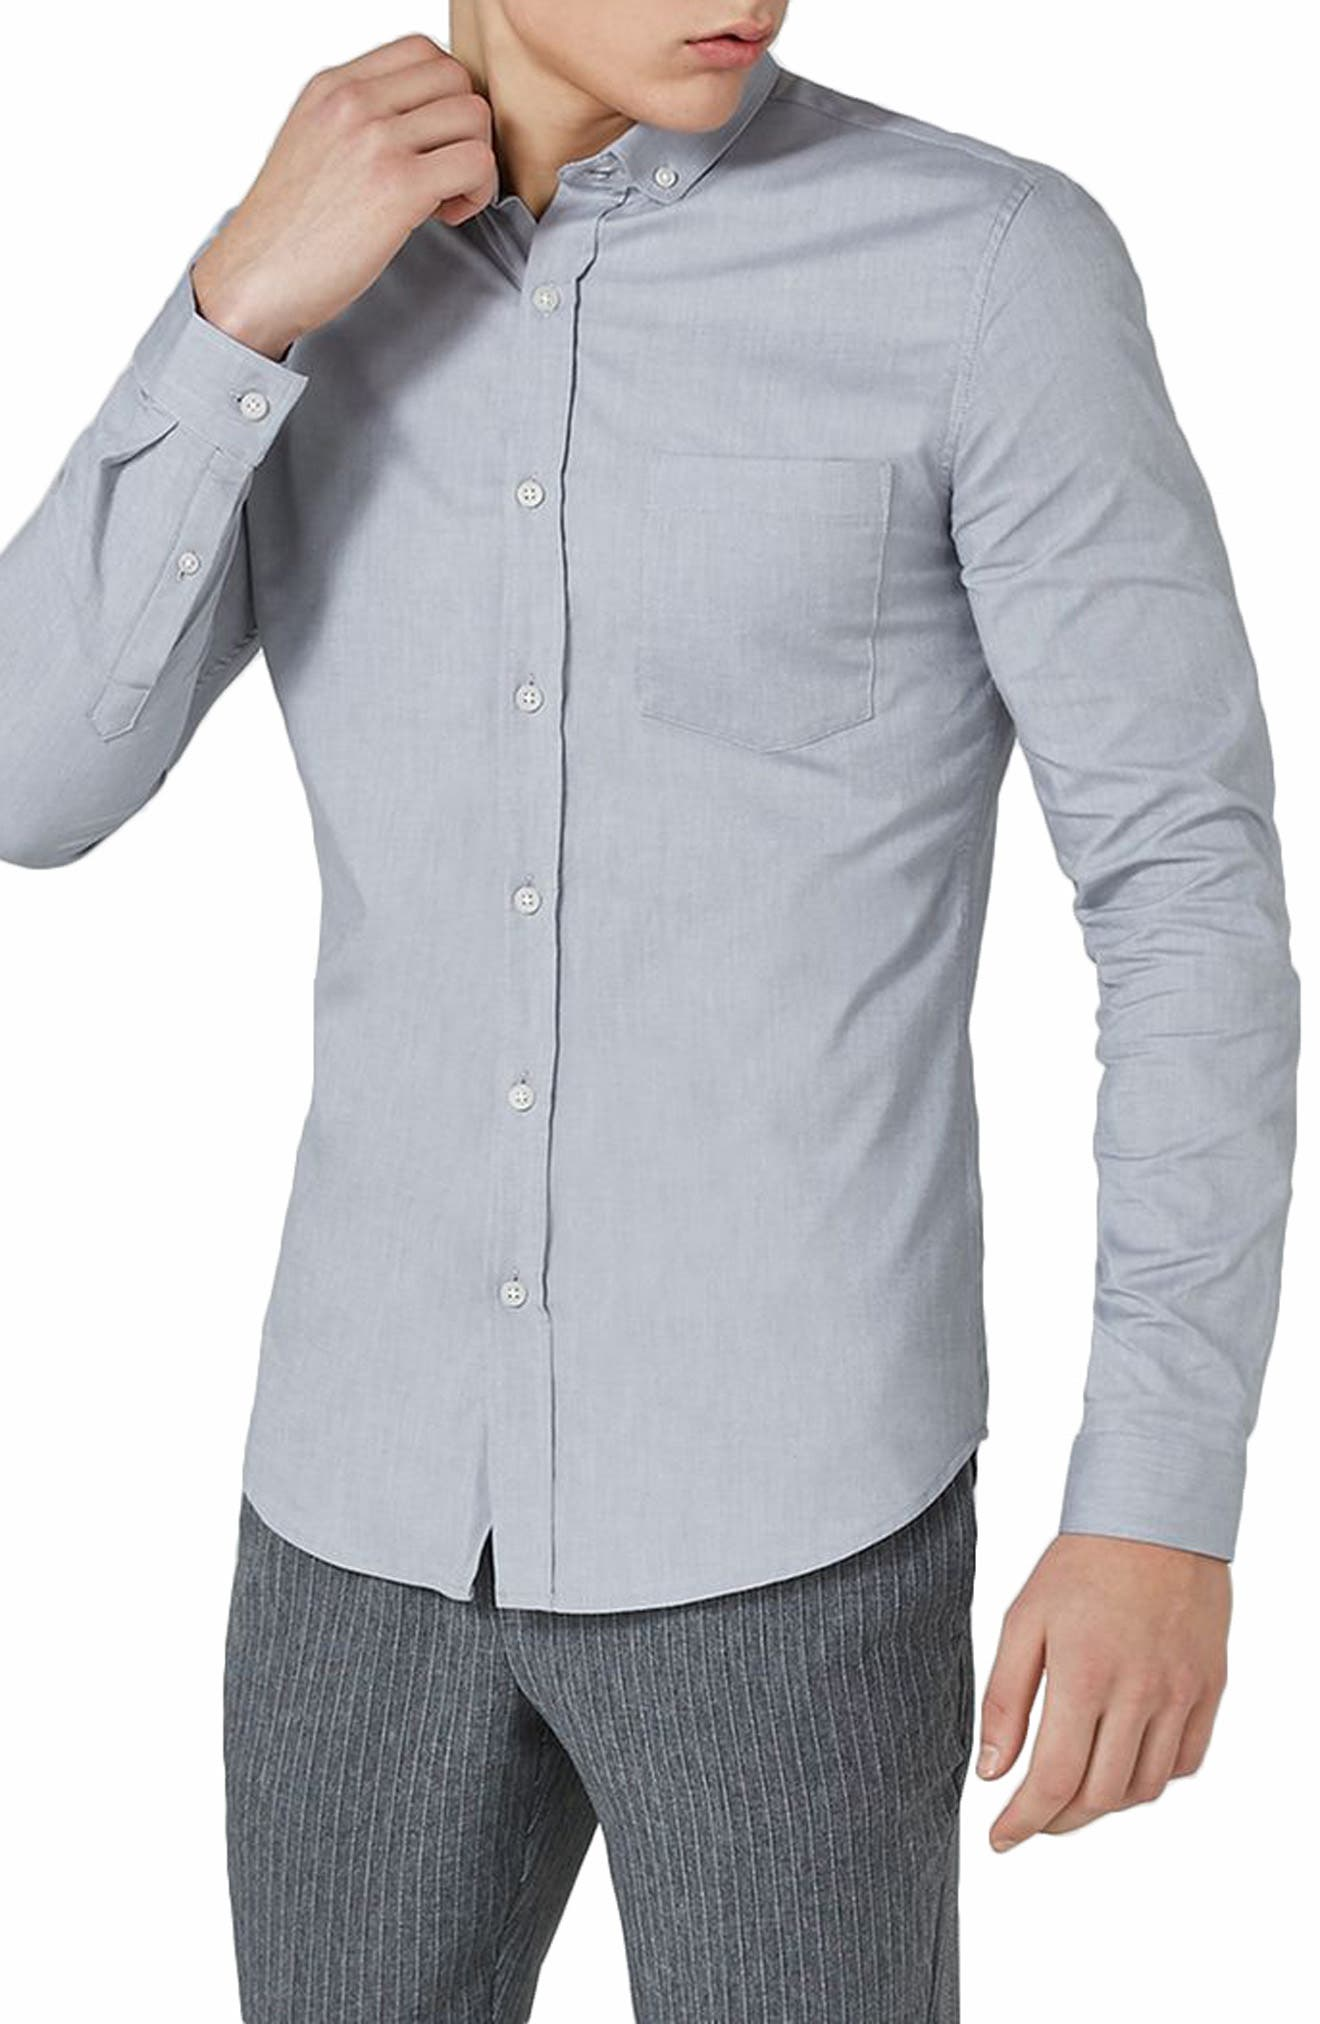 Muscle Fit Oxford Shirt,                         Main,                         color, 020